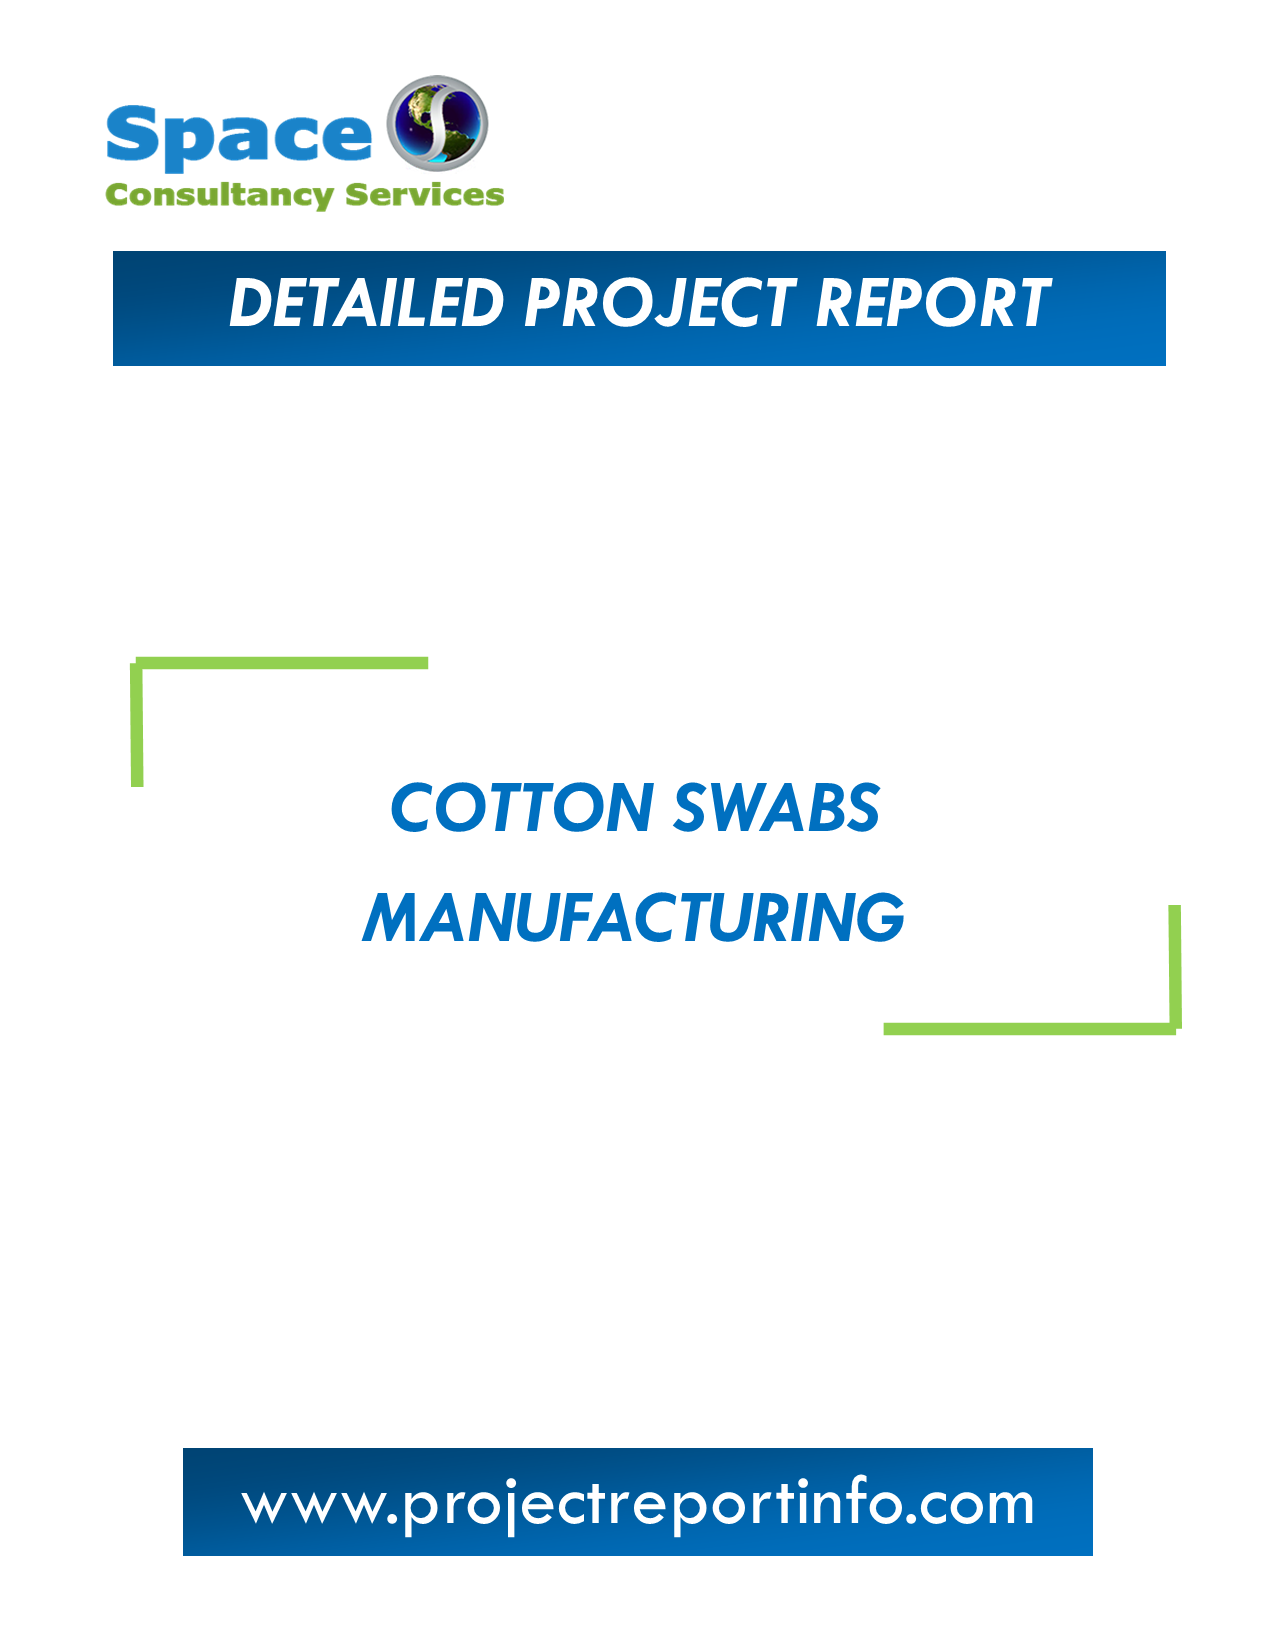 Project Report on Cotton Swabs Manufacturing